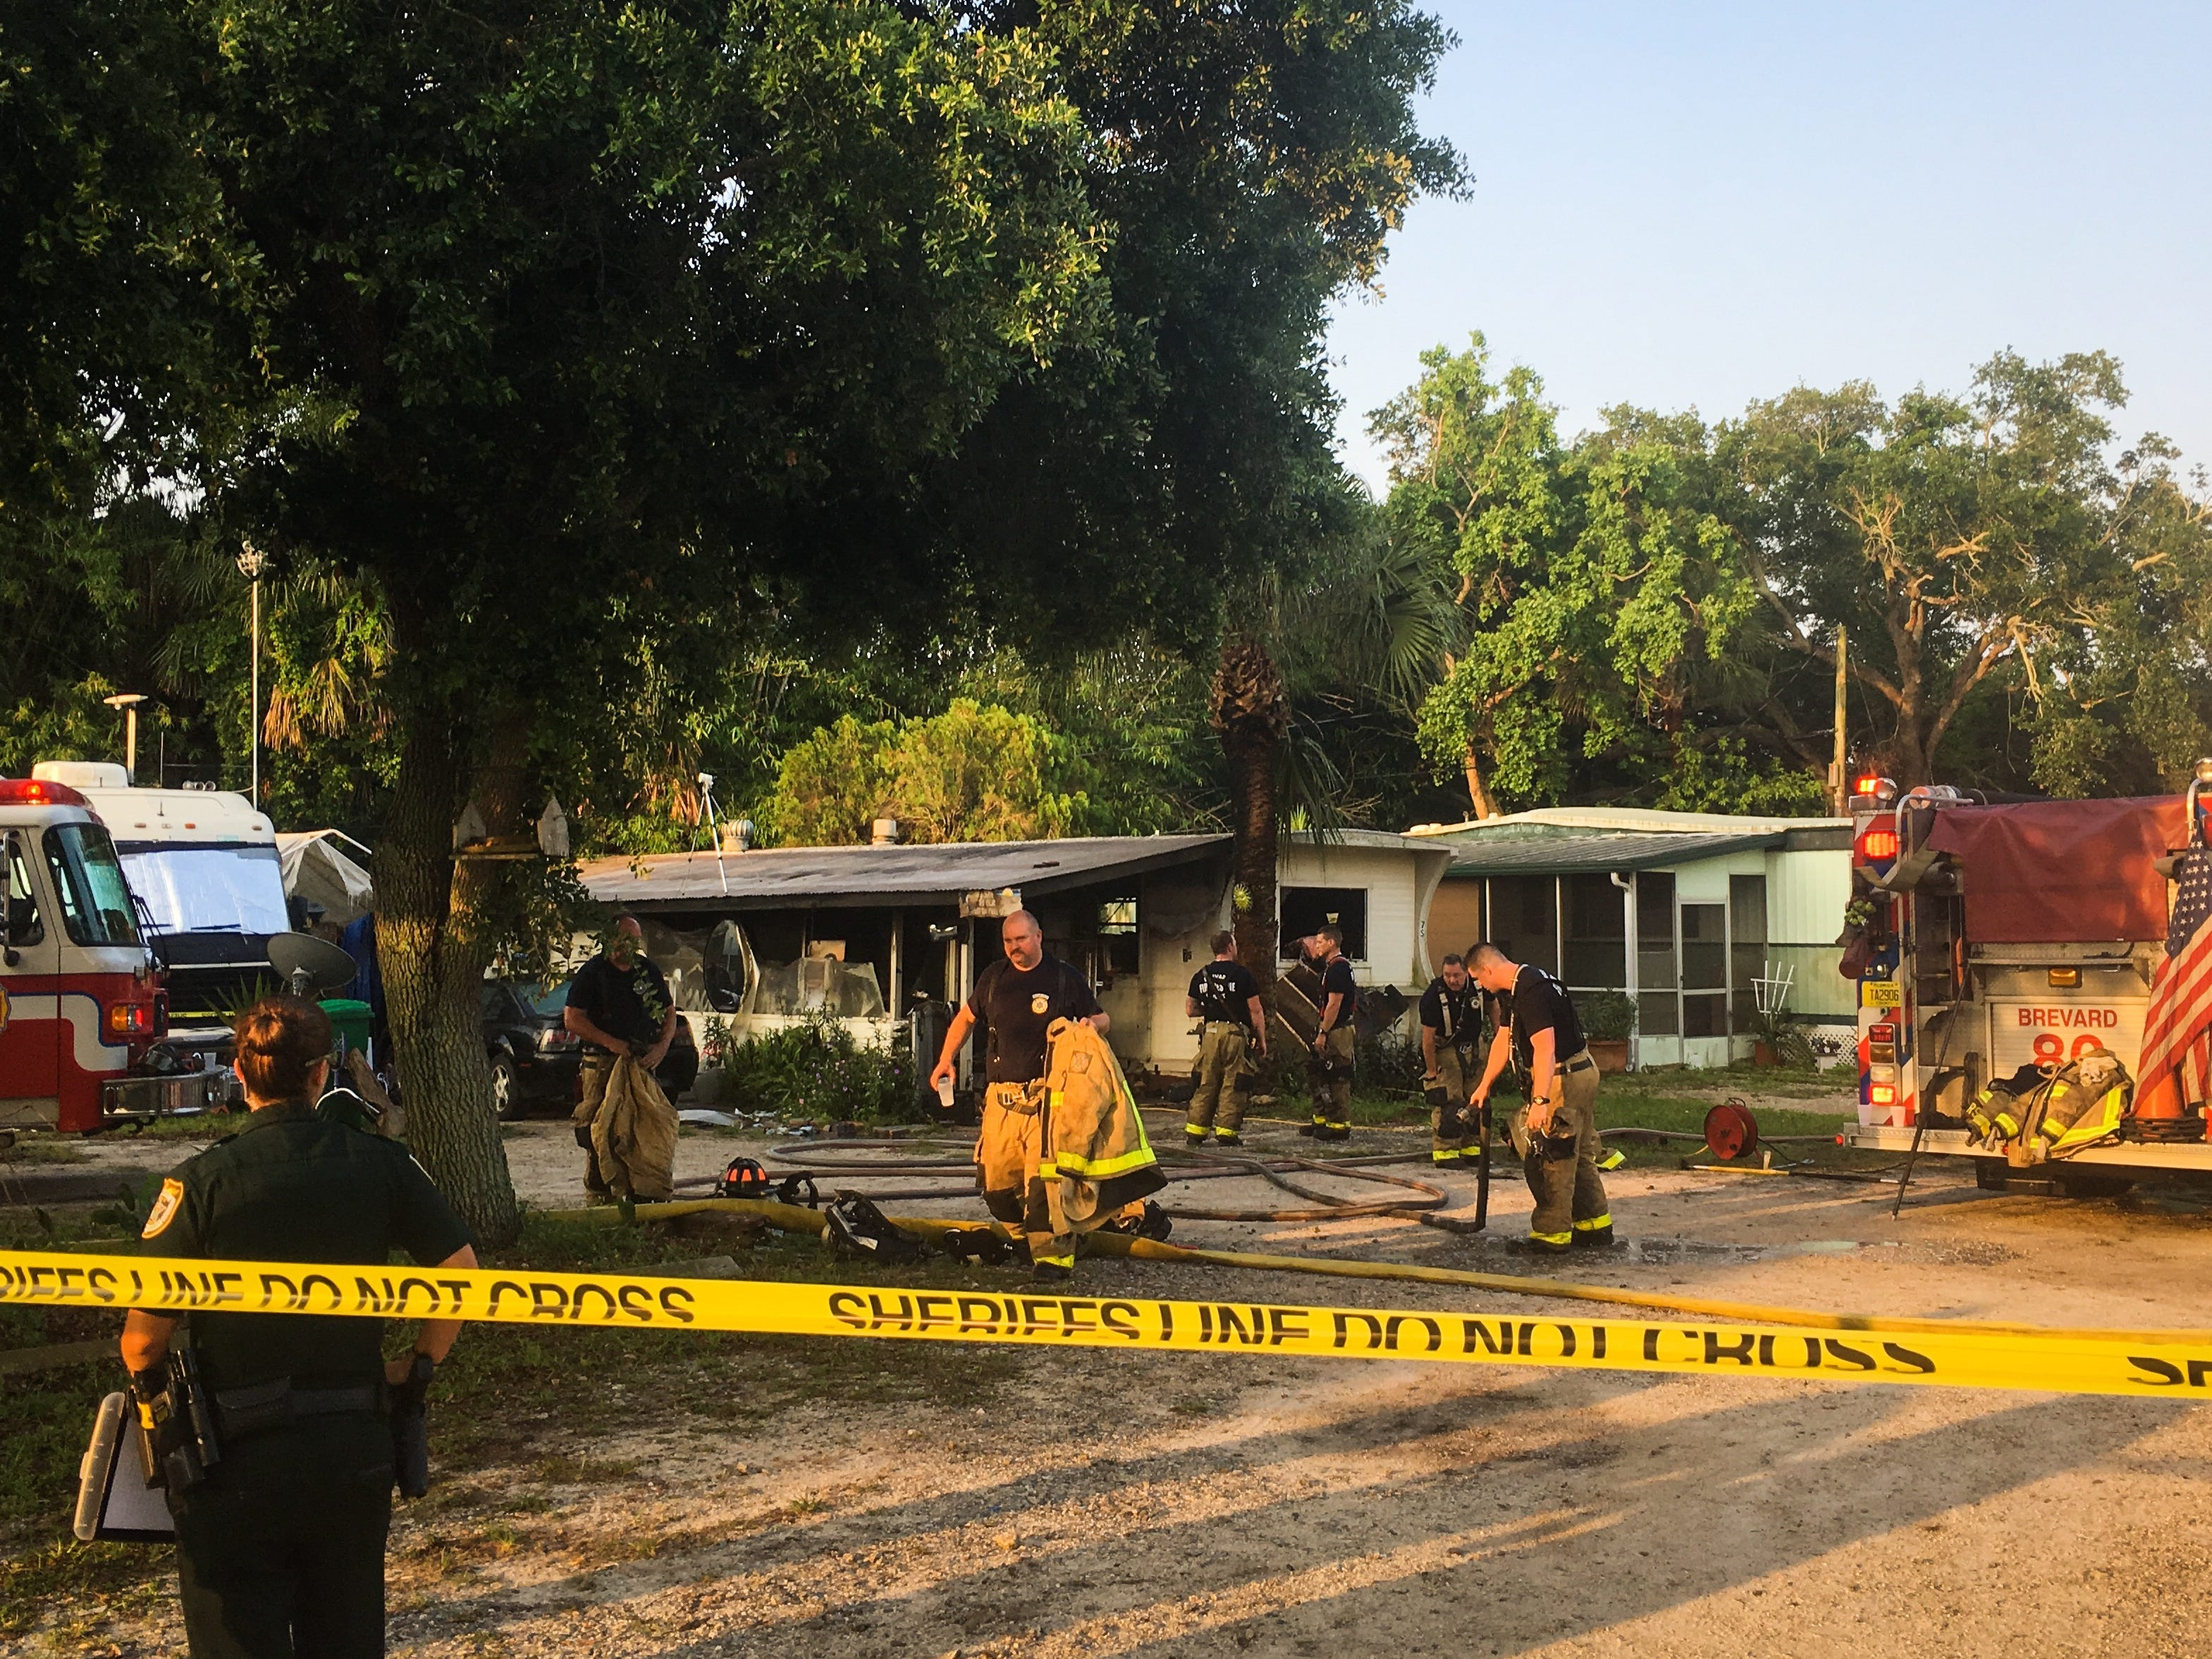 A fire was reported about 6:30 a.m. in a manufactured home in the 6300 block of U.S. 1.